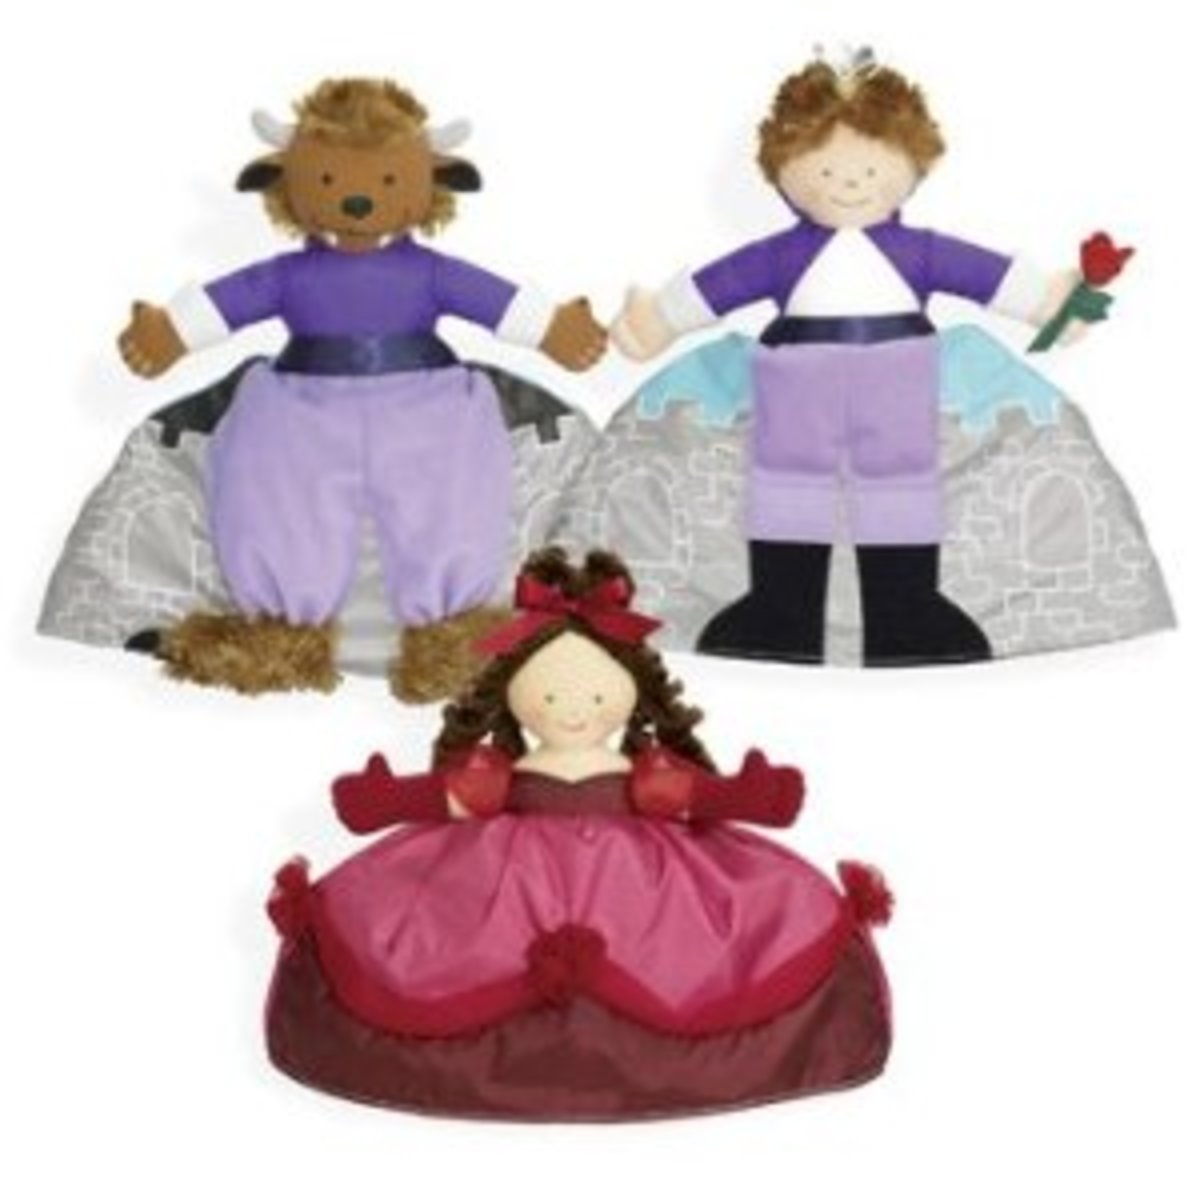 Three dolls in one make the tale of Beauty and the Beast come alive for young children.